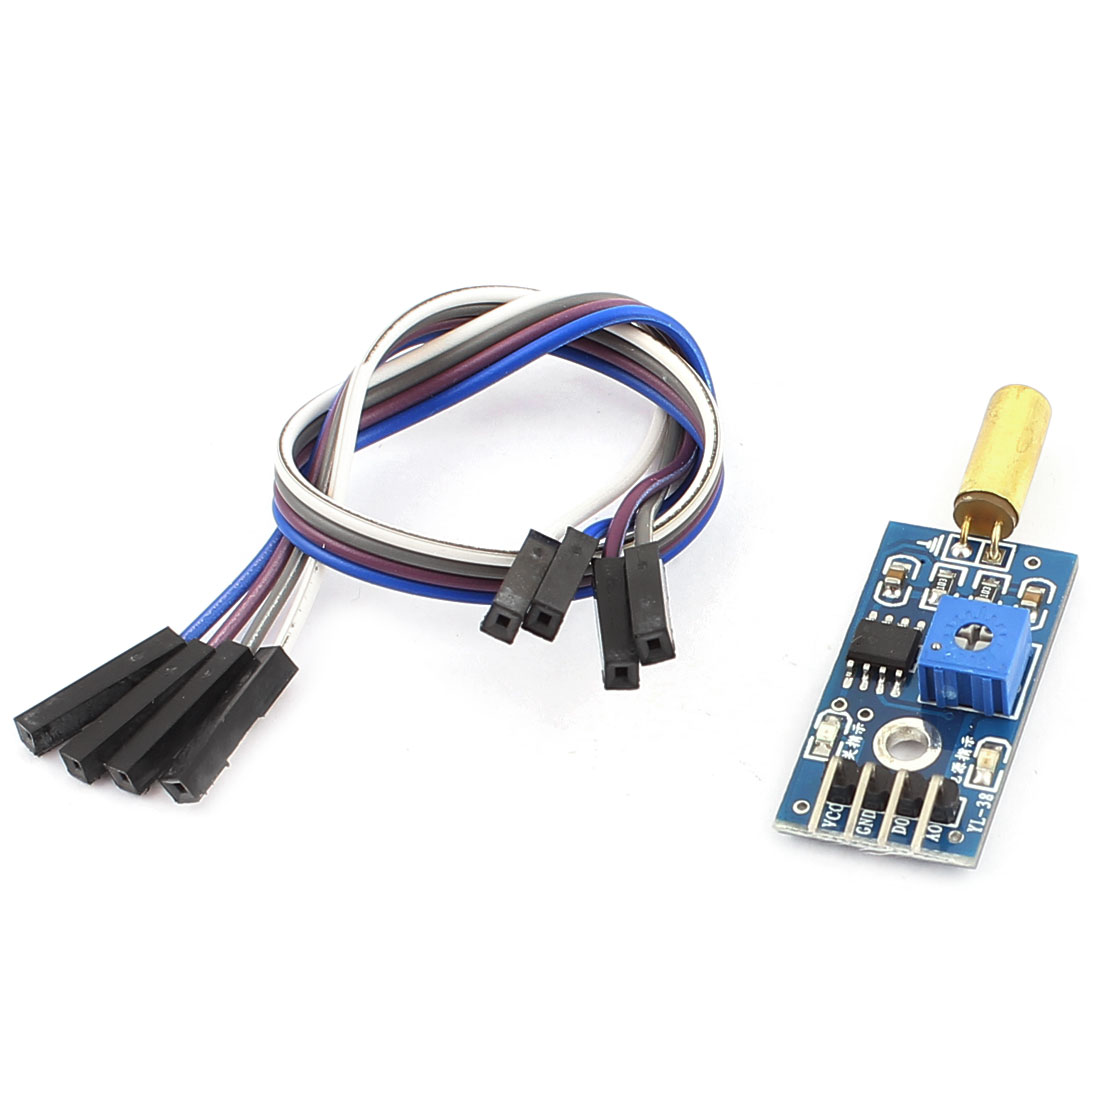 Printed Circuit Board 4 Pins 1CH Output Angle Sensor Module w Cable